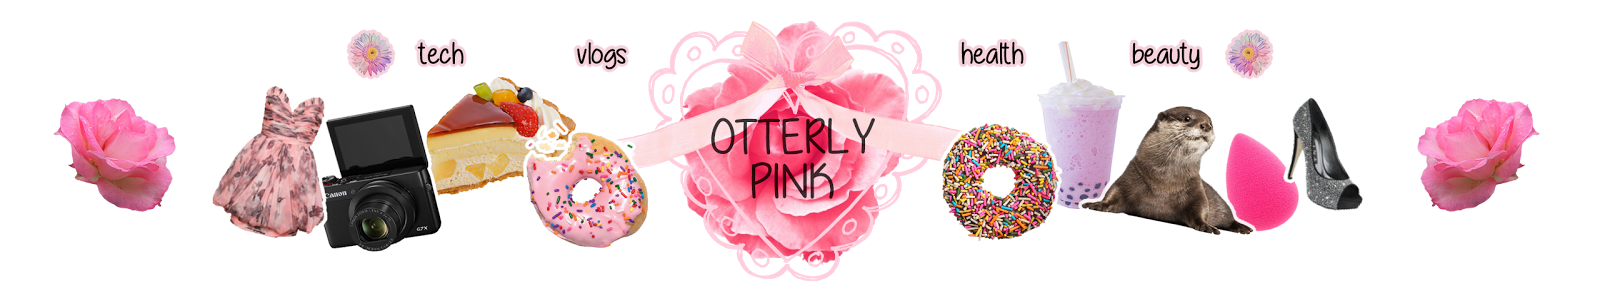 Otterly pink new start. News clipart exciting news